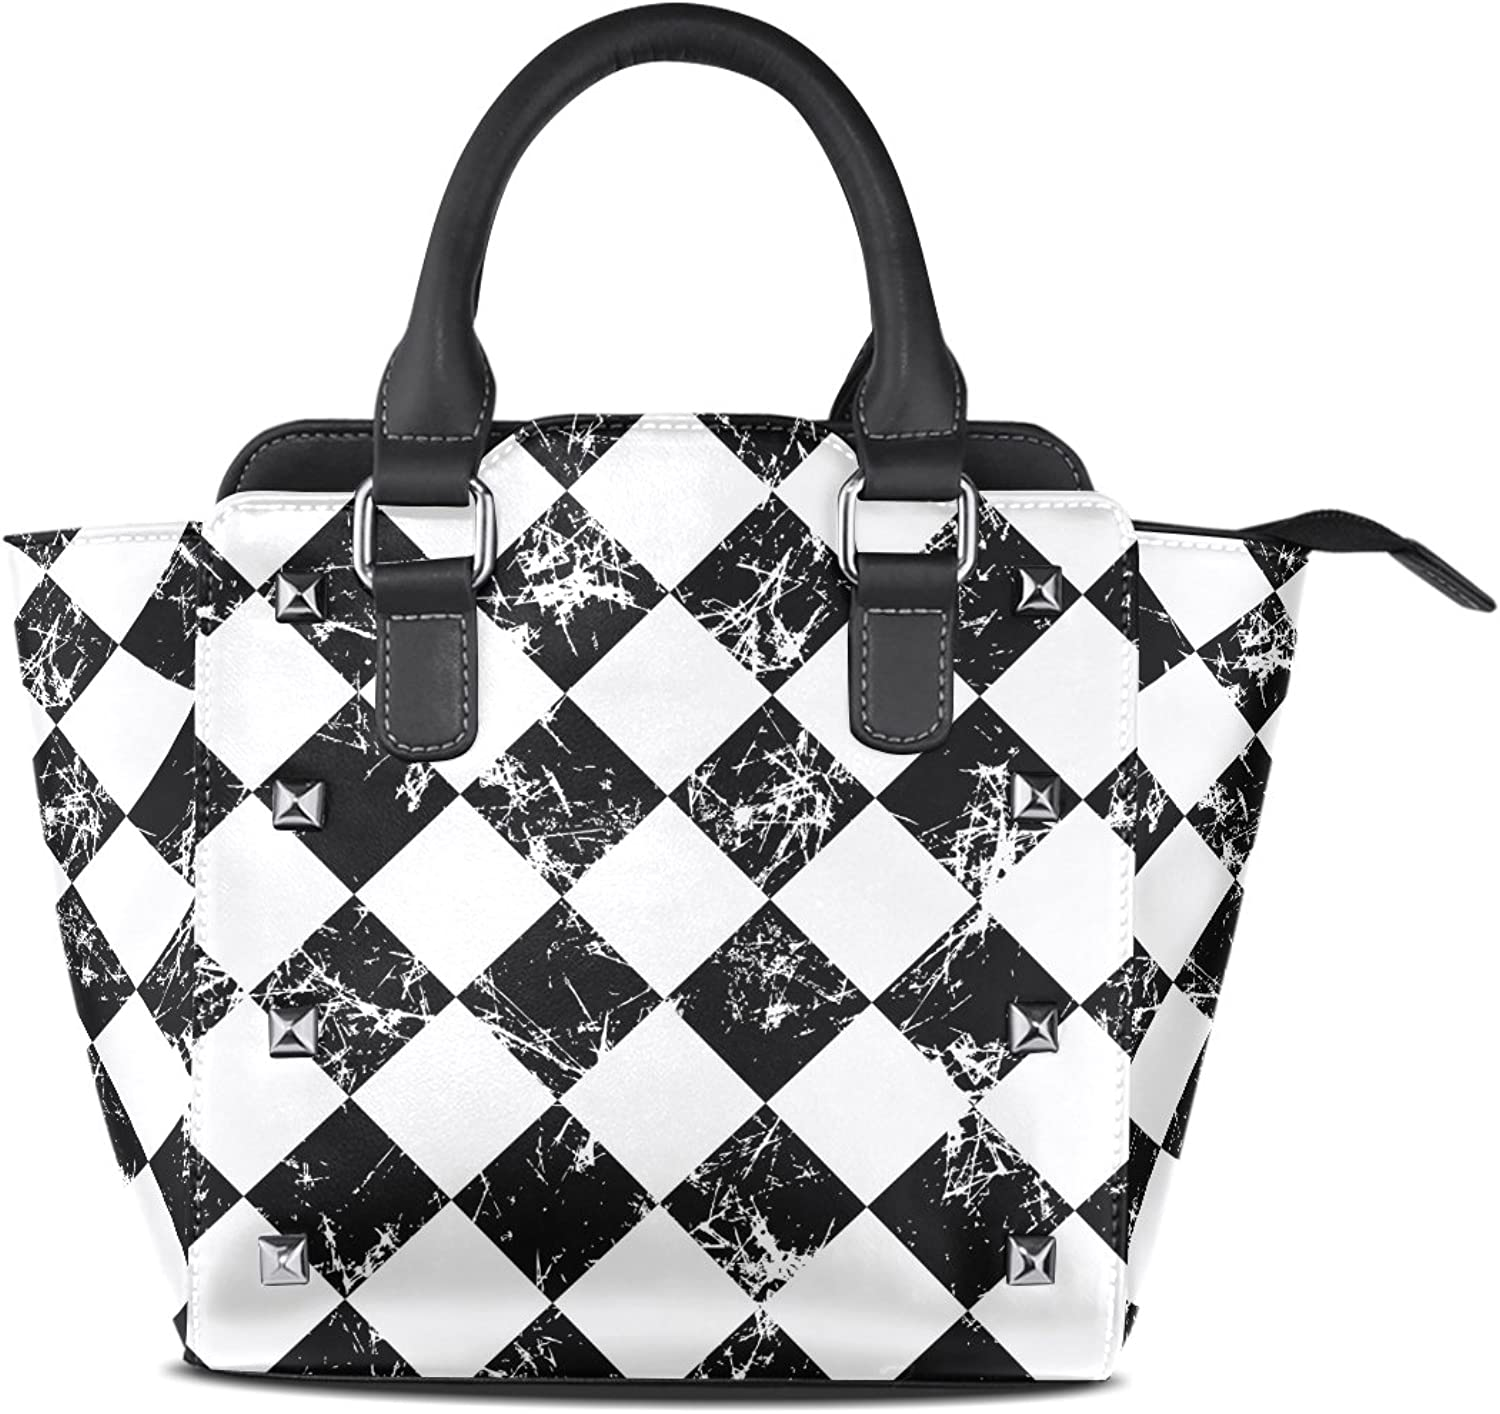 Sunlome Grunge Black White Checked Graphic Print Handbags Women's PU Leather Top-Handle Shoulder Bags